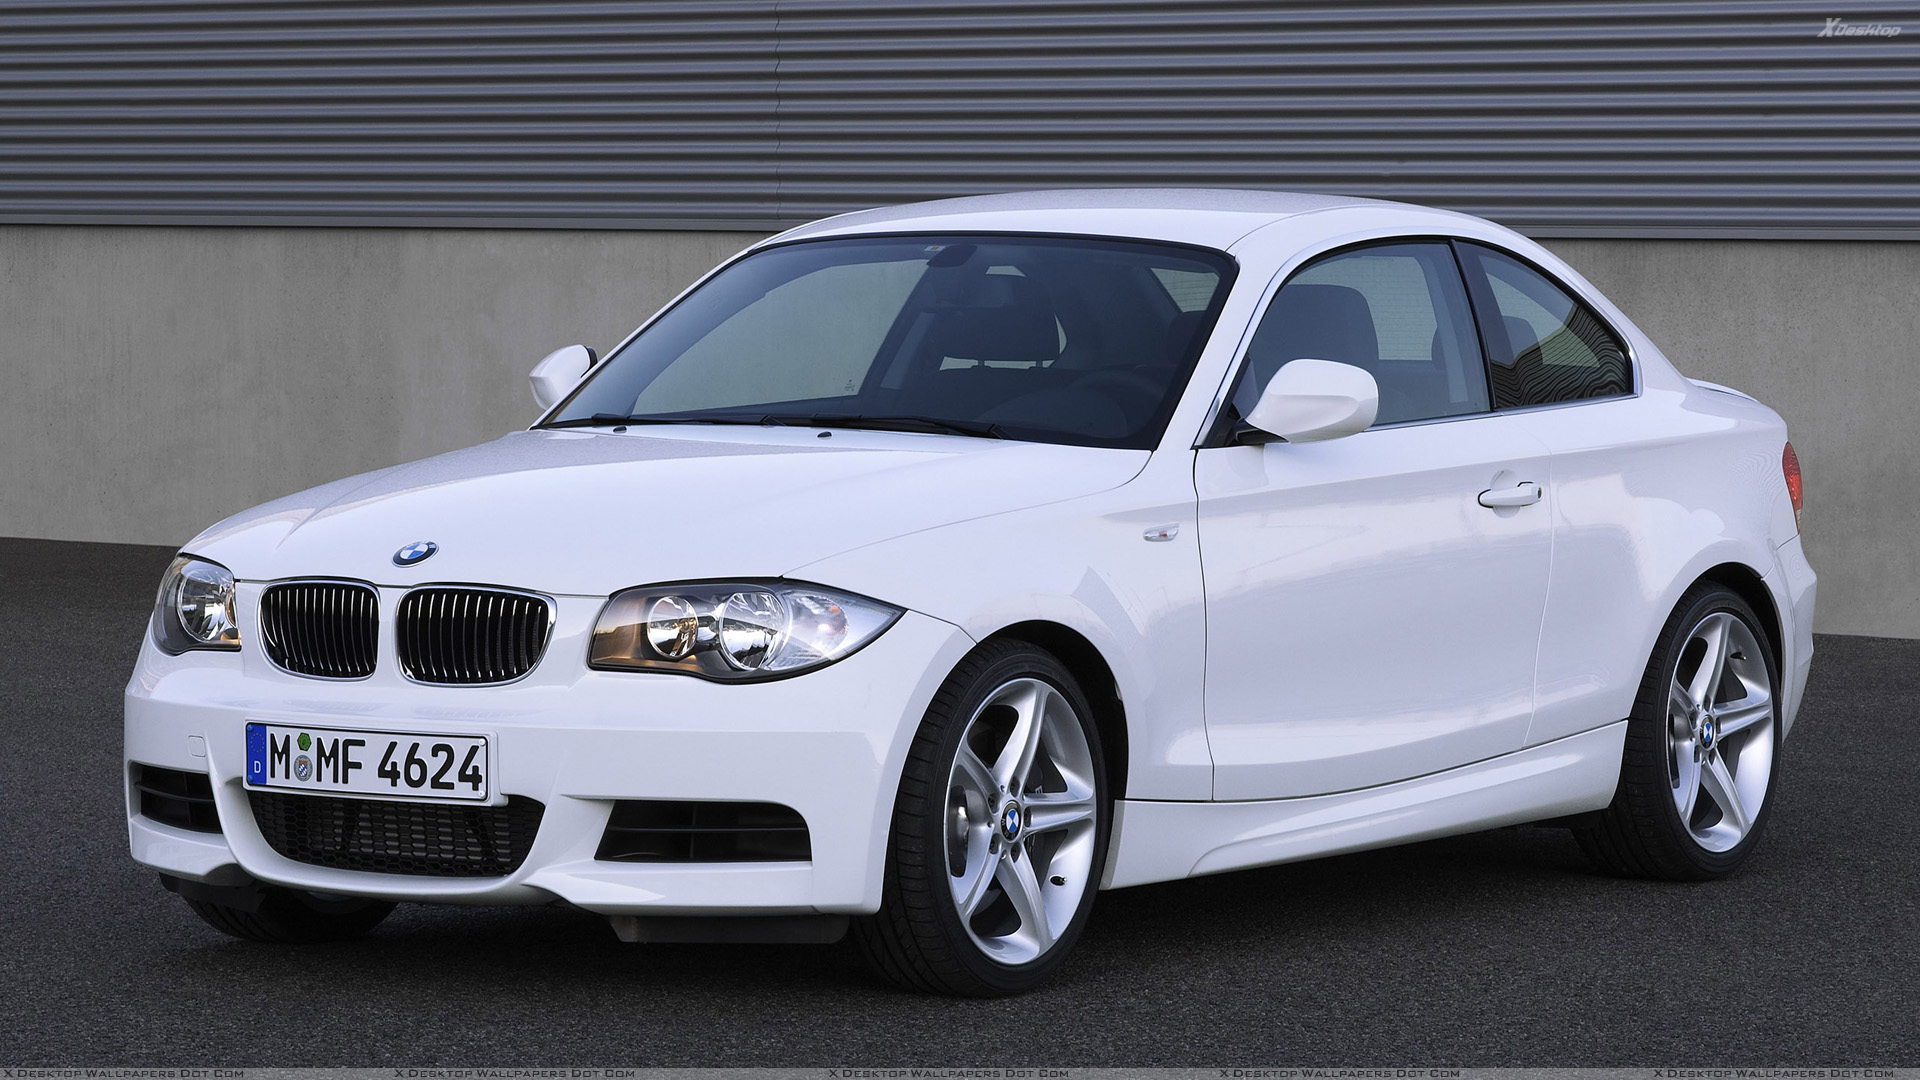 200a23c1281339 2007 BMW 1 Series E82 135i Coupe Side Front Pose In White Wallpaper